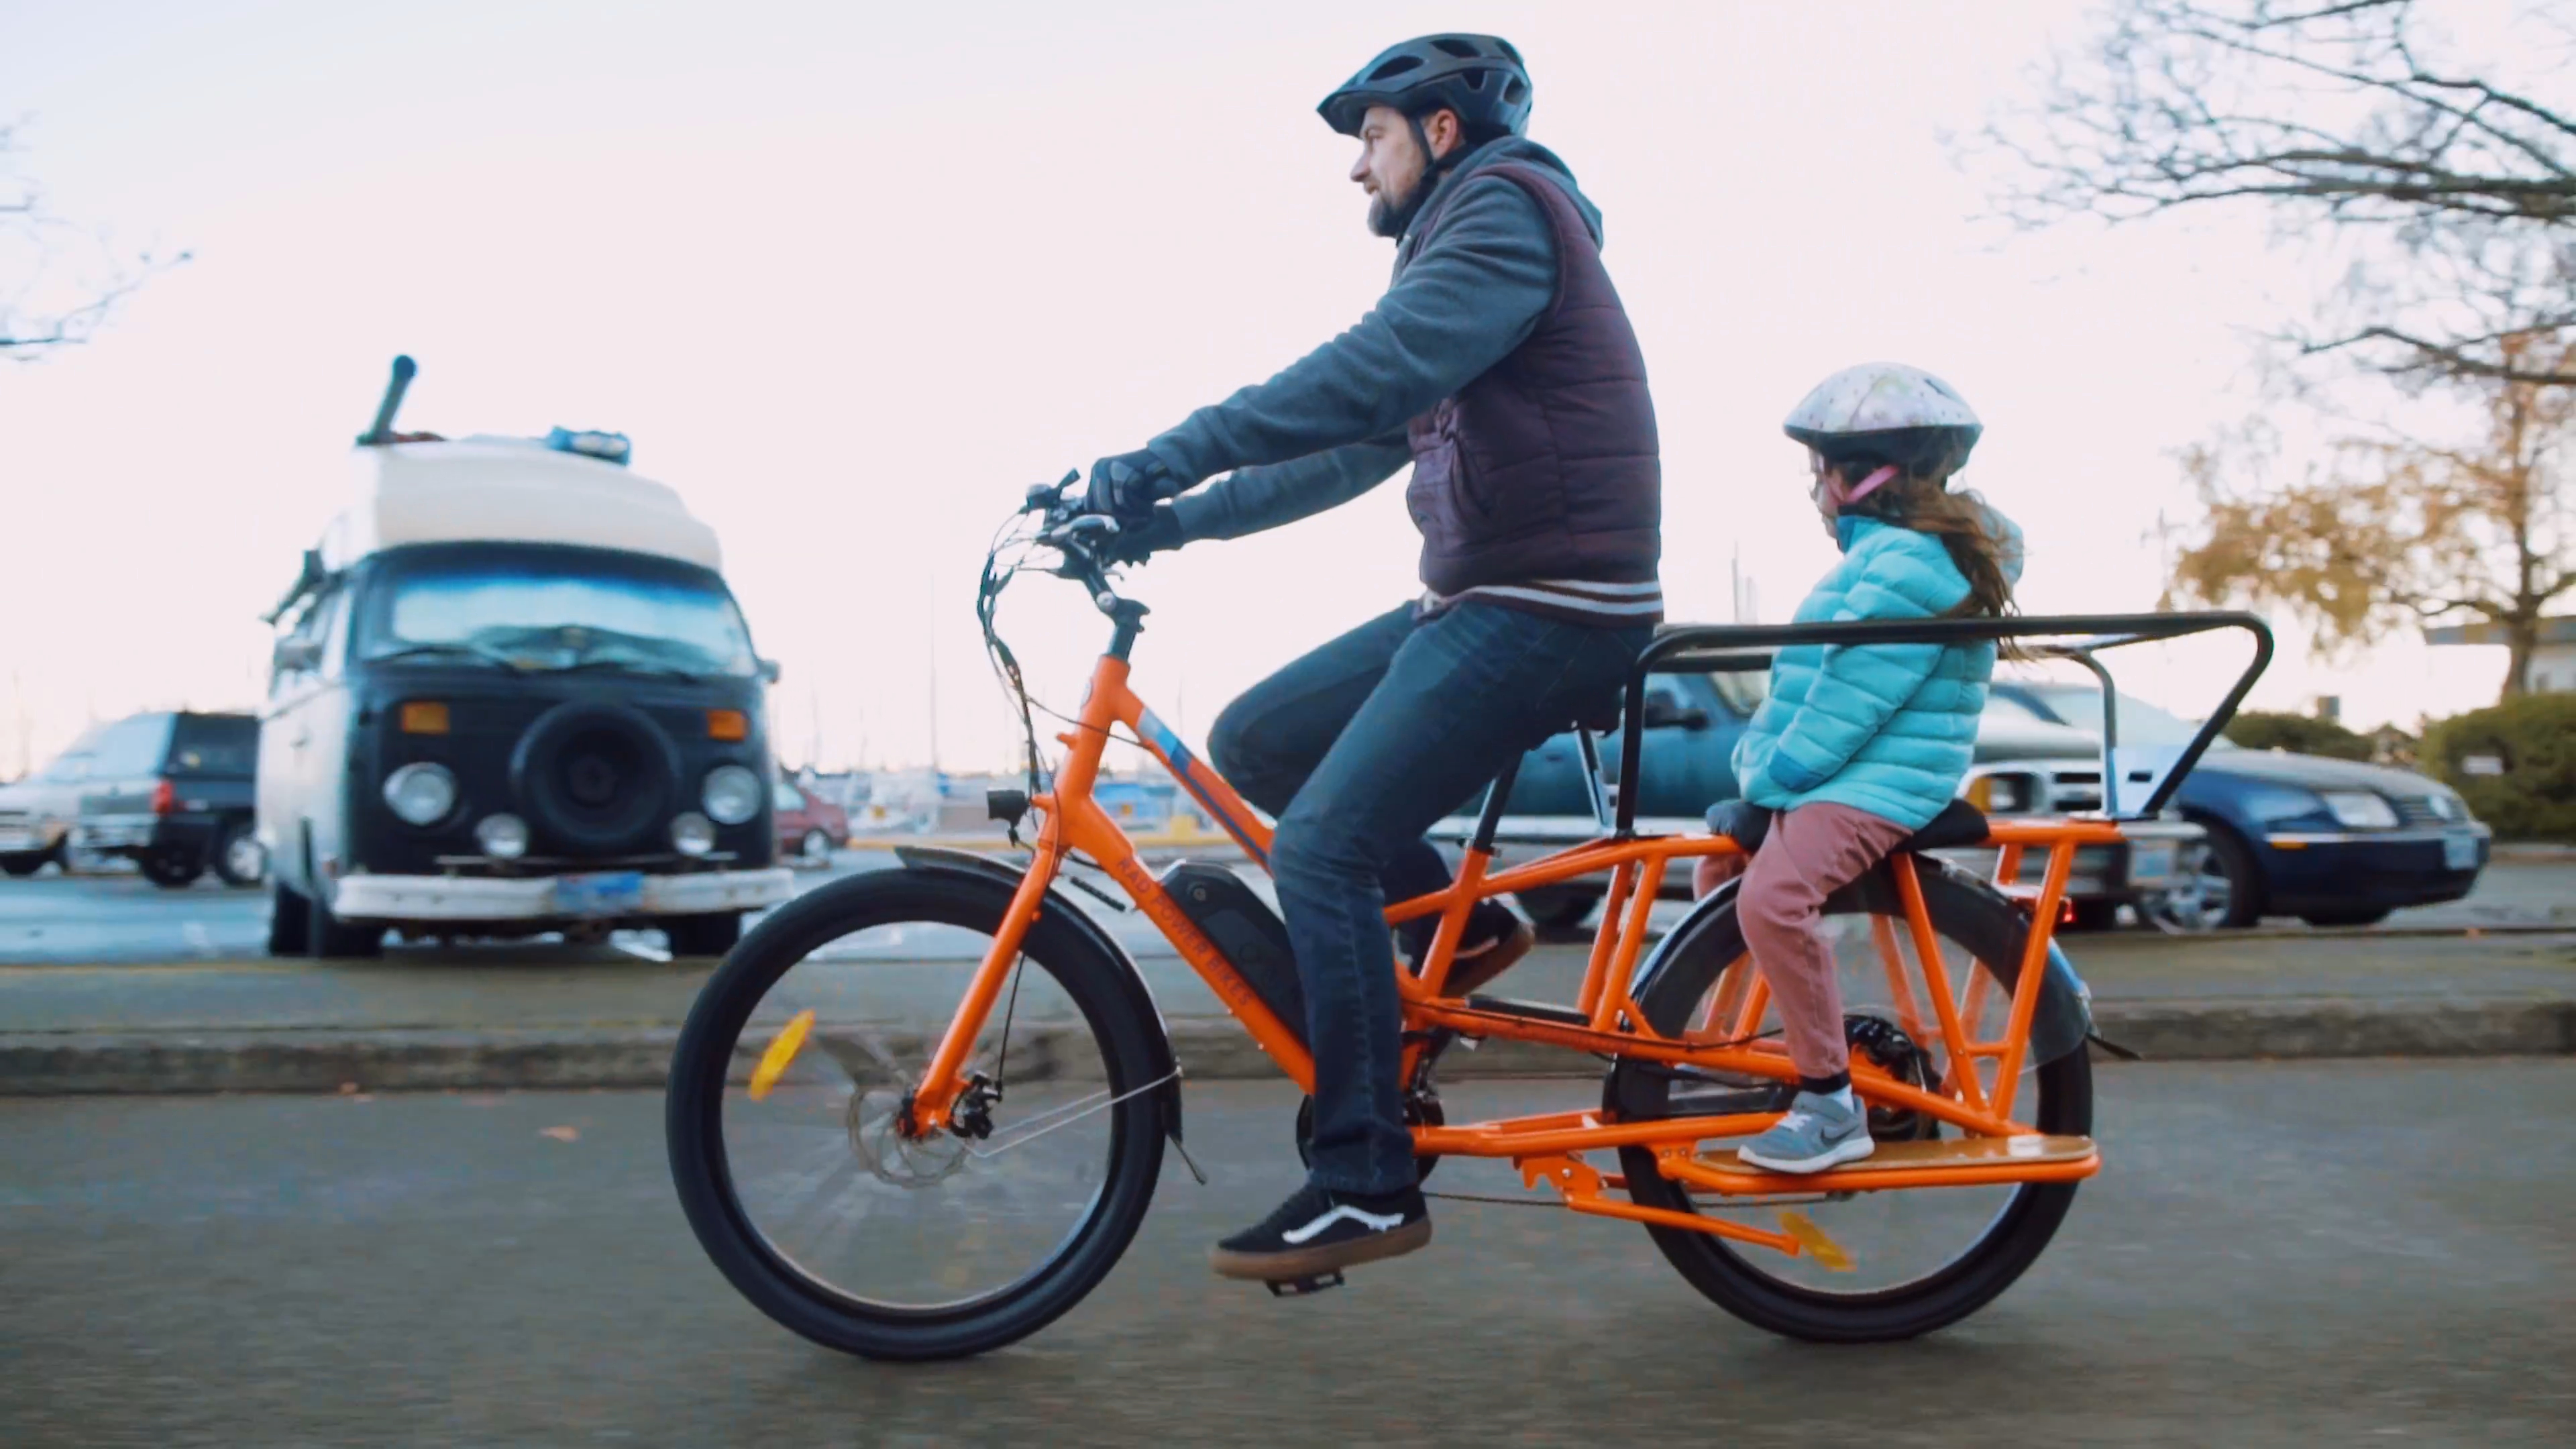 Finally, an affordable e-bike that can do it all